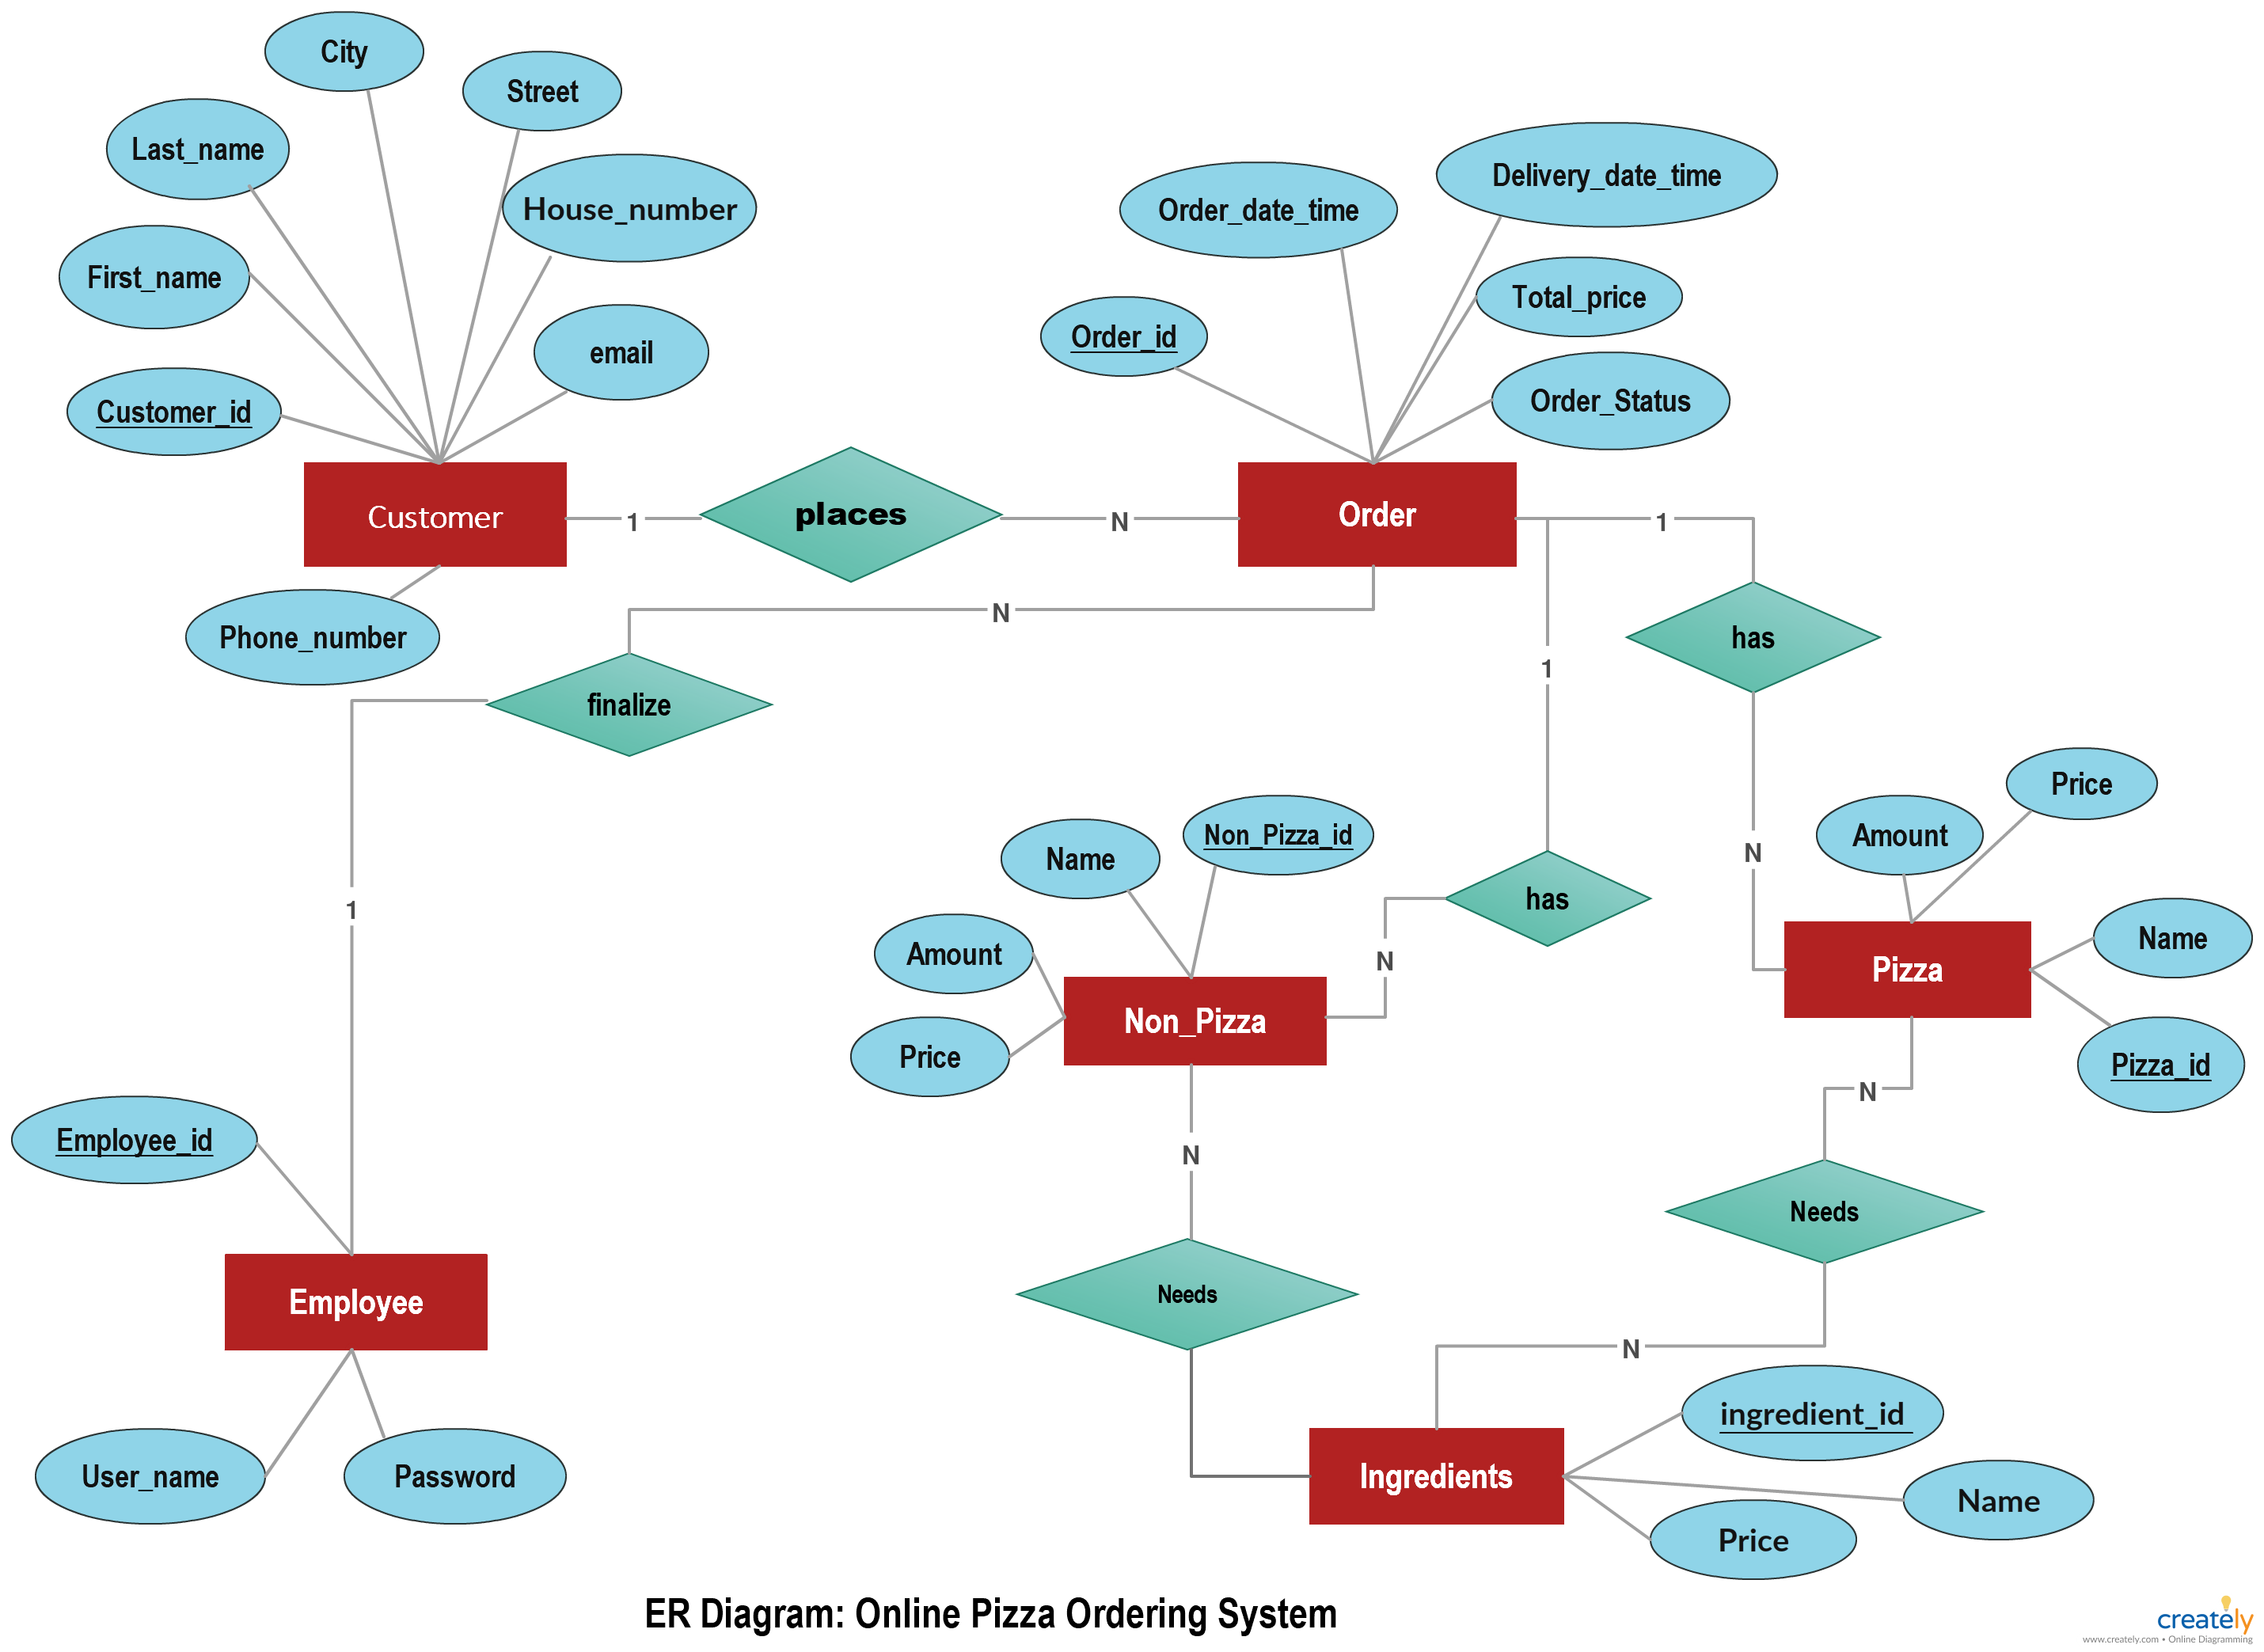 Online pizza ordering system illustrated using an er diagram an erd online pizza ordering system illustrated using an er diagram an erd actually conveys the key entities in a some database and their relationship with each ccuart Images